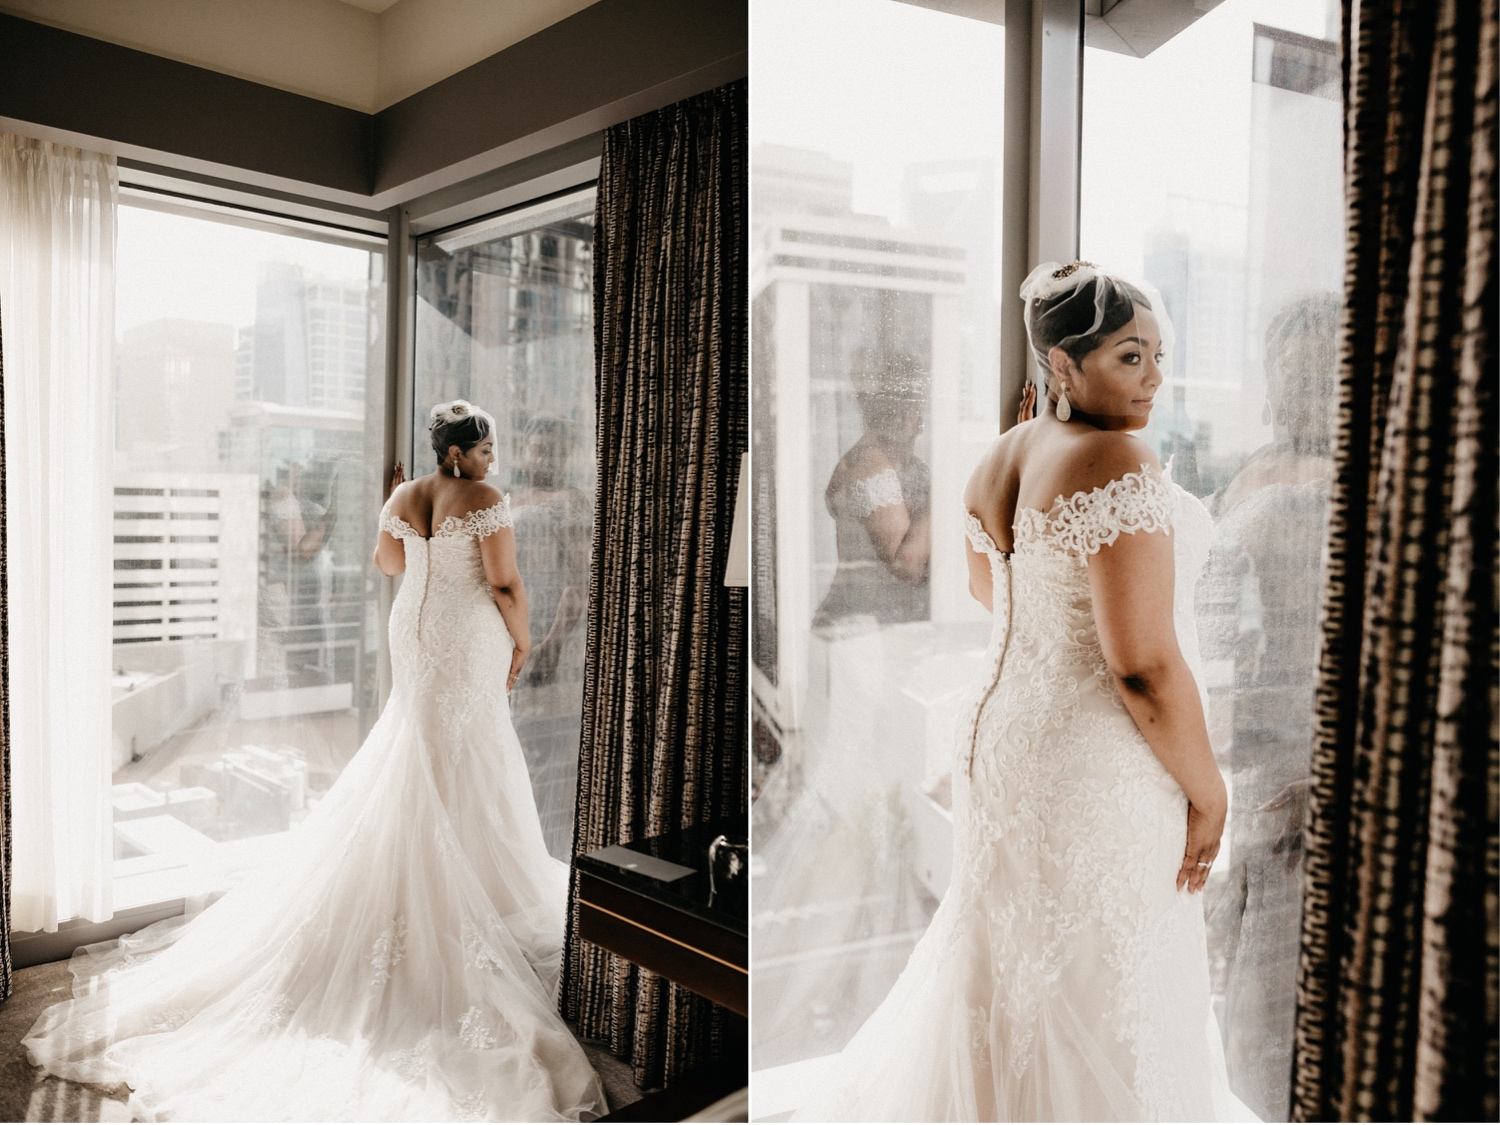 22_charlotteNC_charlotteweddingphotographer_Ritz-carlton-wedding.jpg